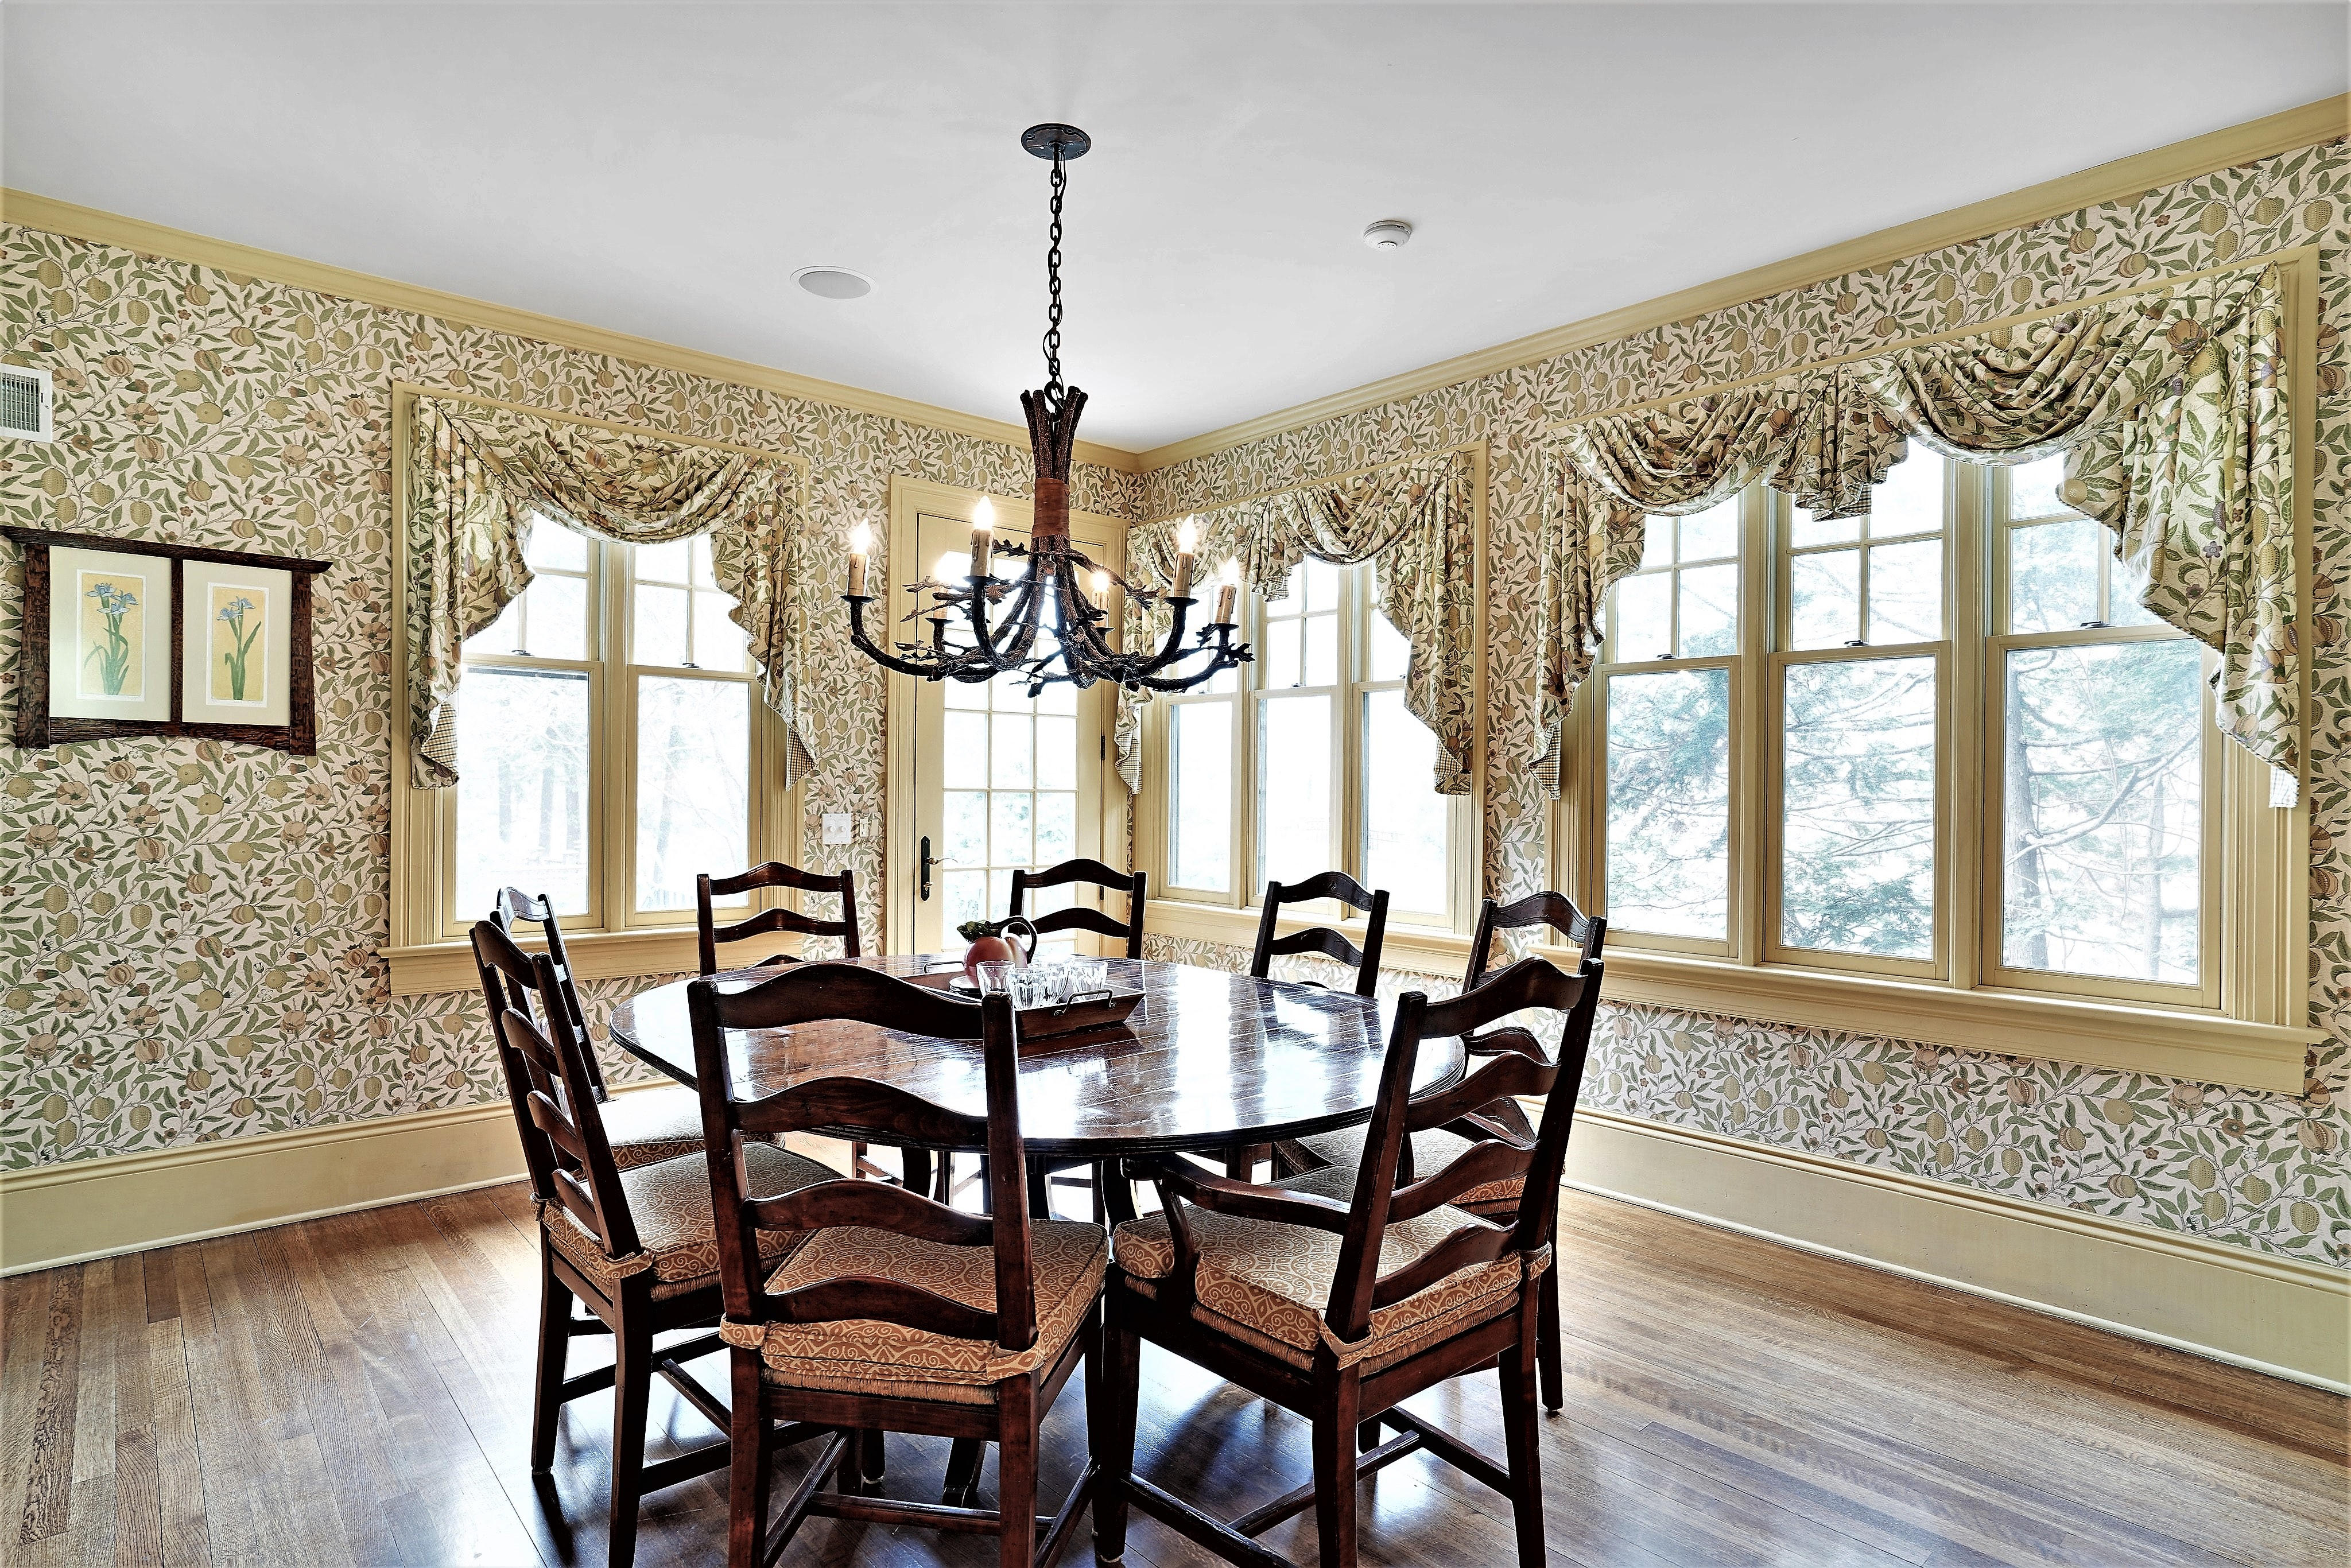 61 Hemlock Breakfast Room